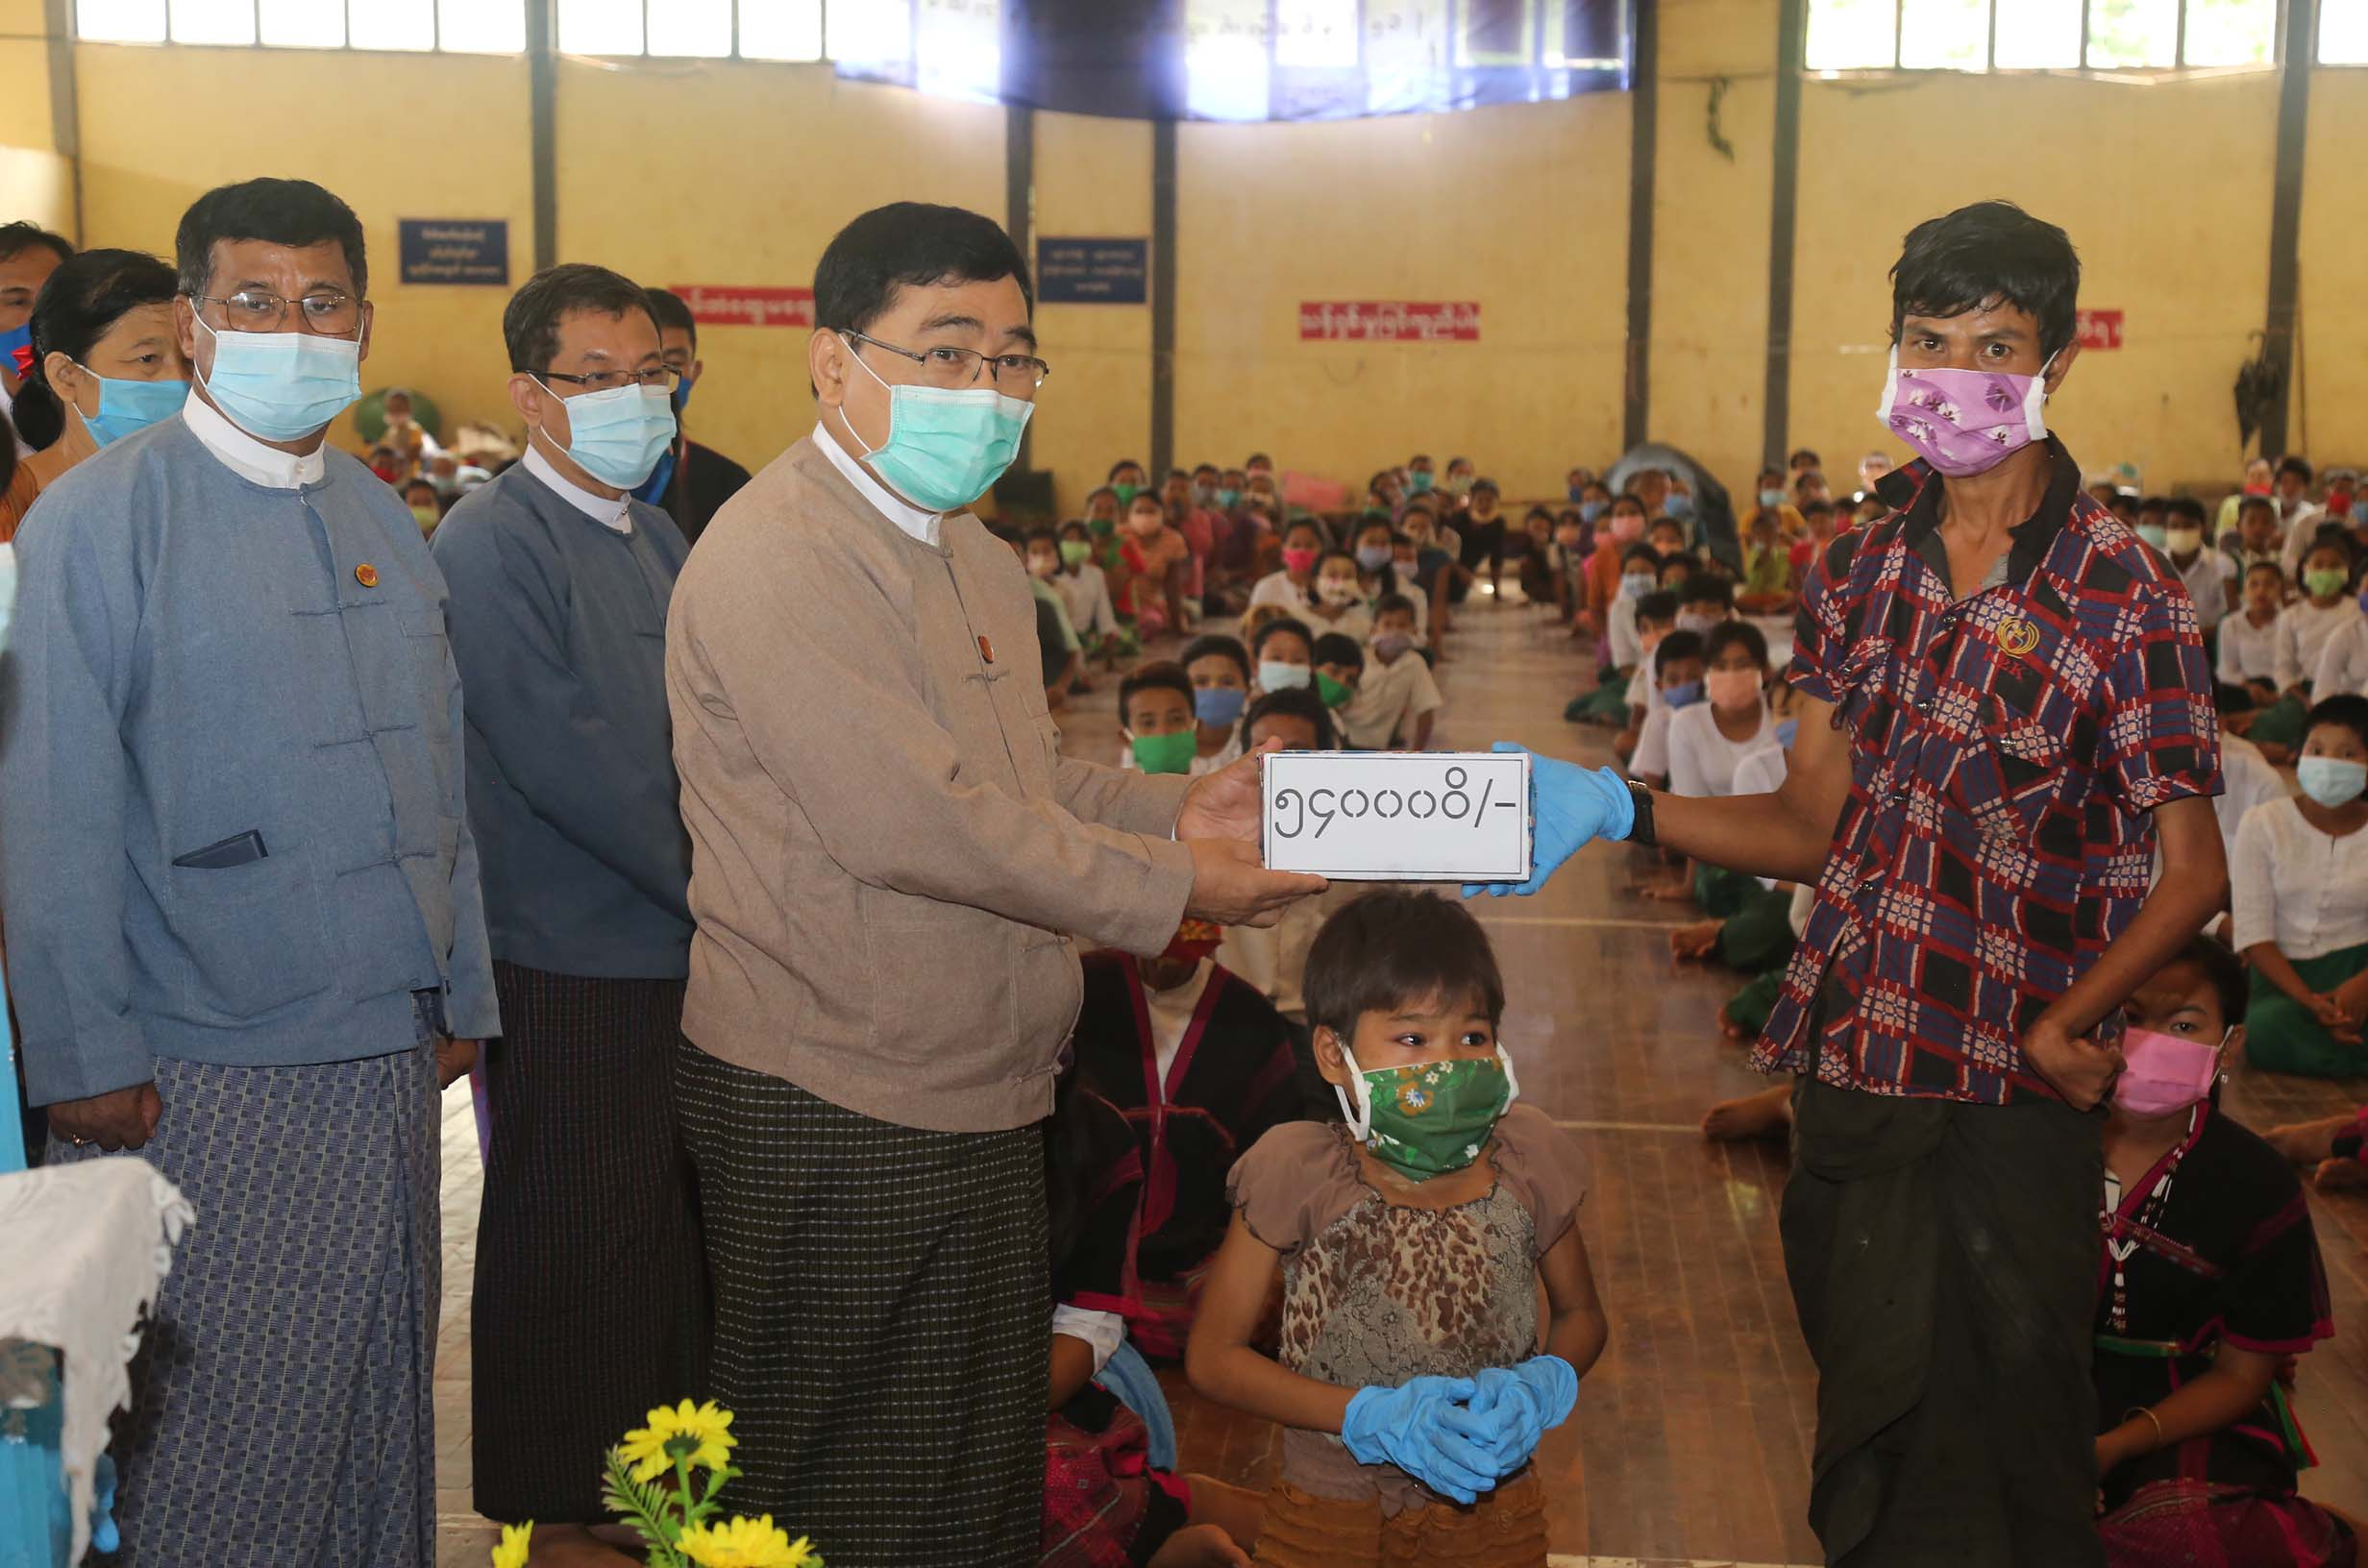 Union Minister Dr Win Myat Aye presents cash assistance for IDPs in Ann Township on 10 August. PHOTO: MNA